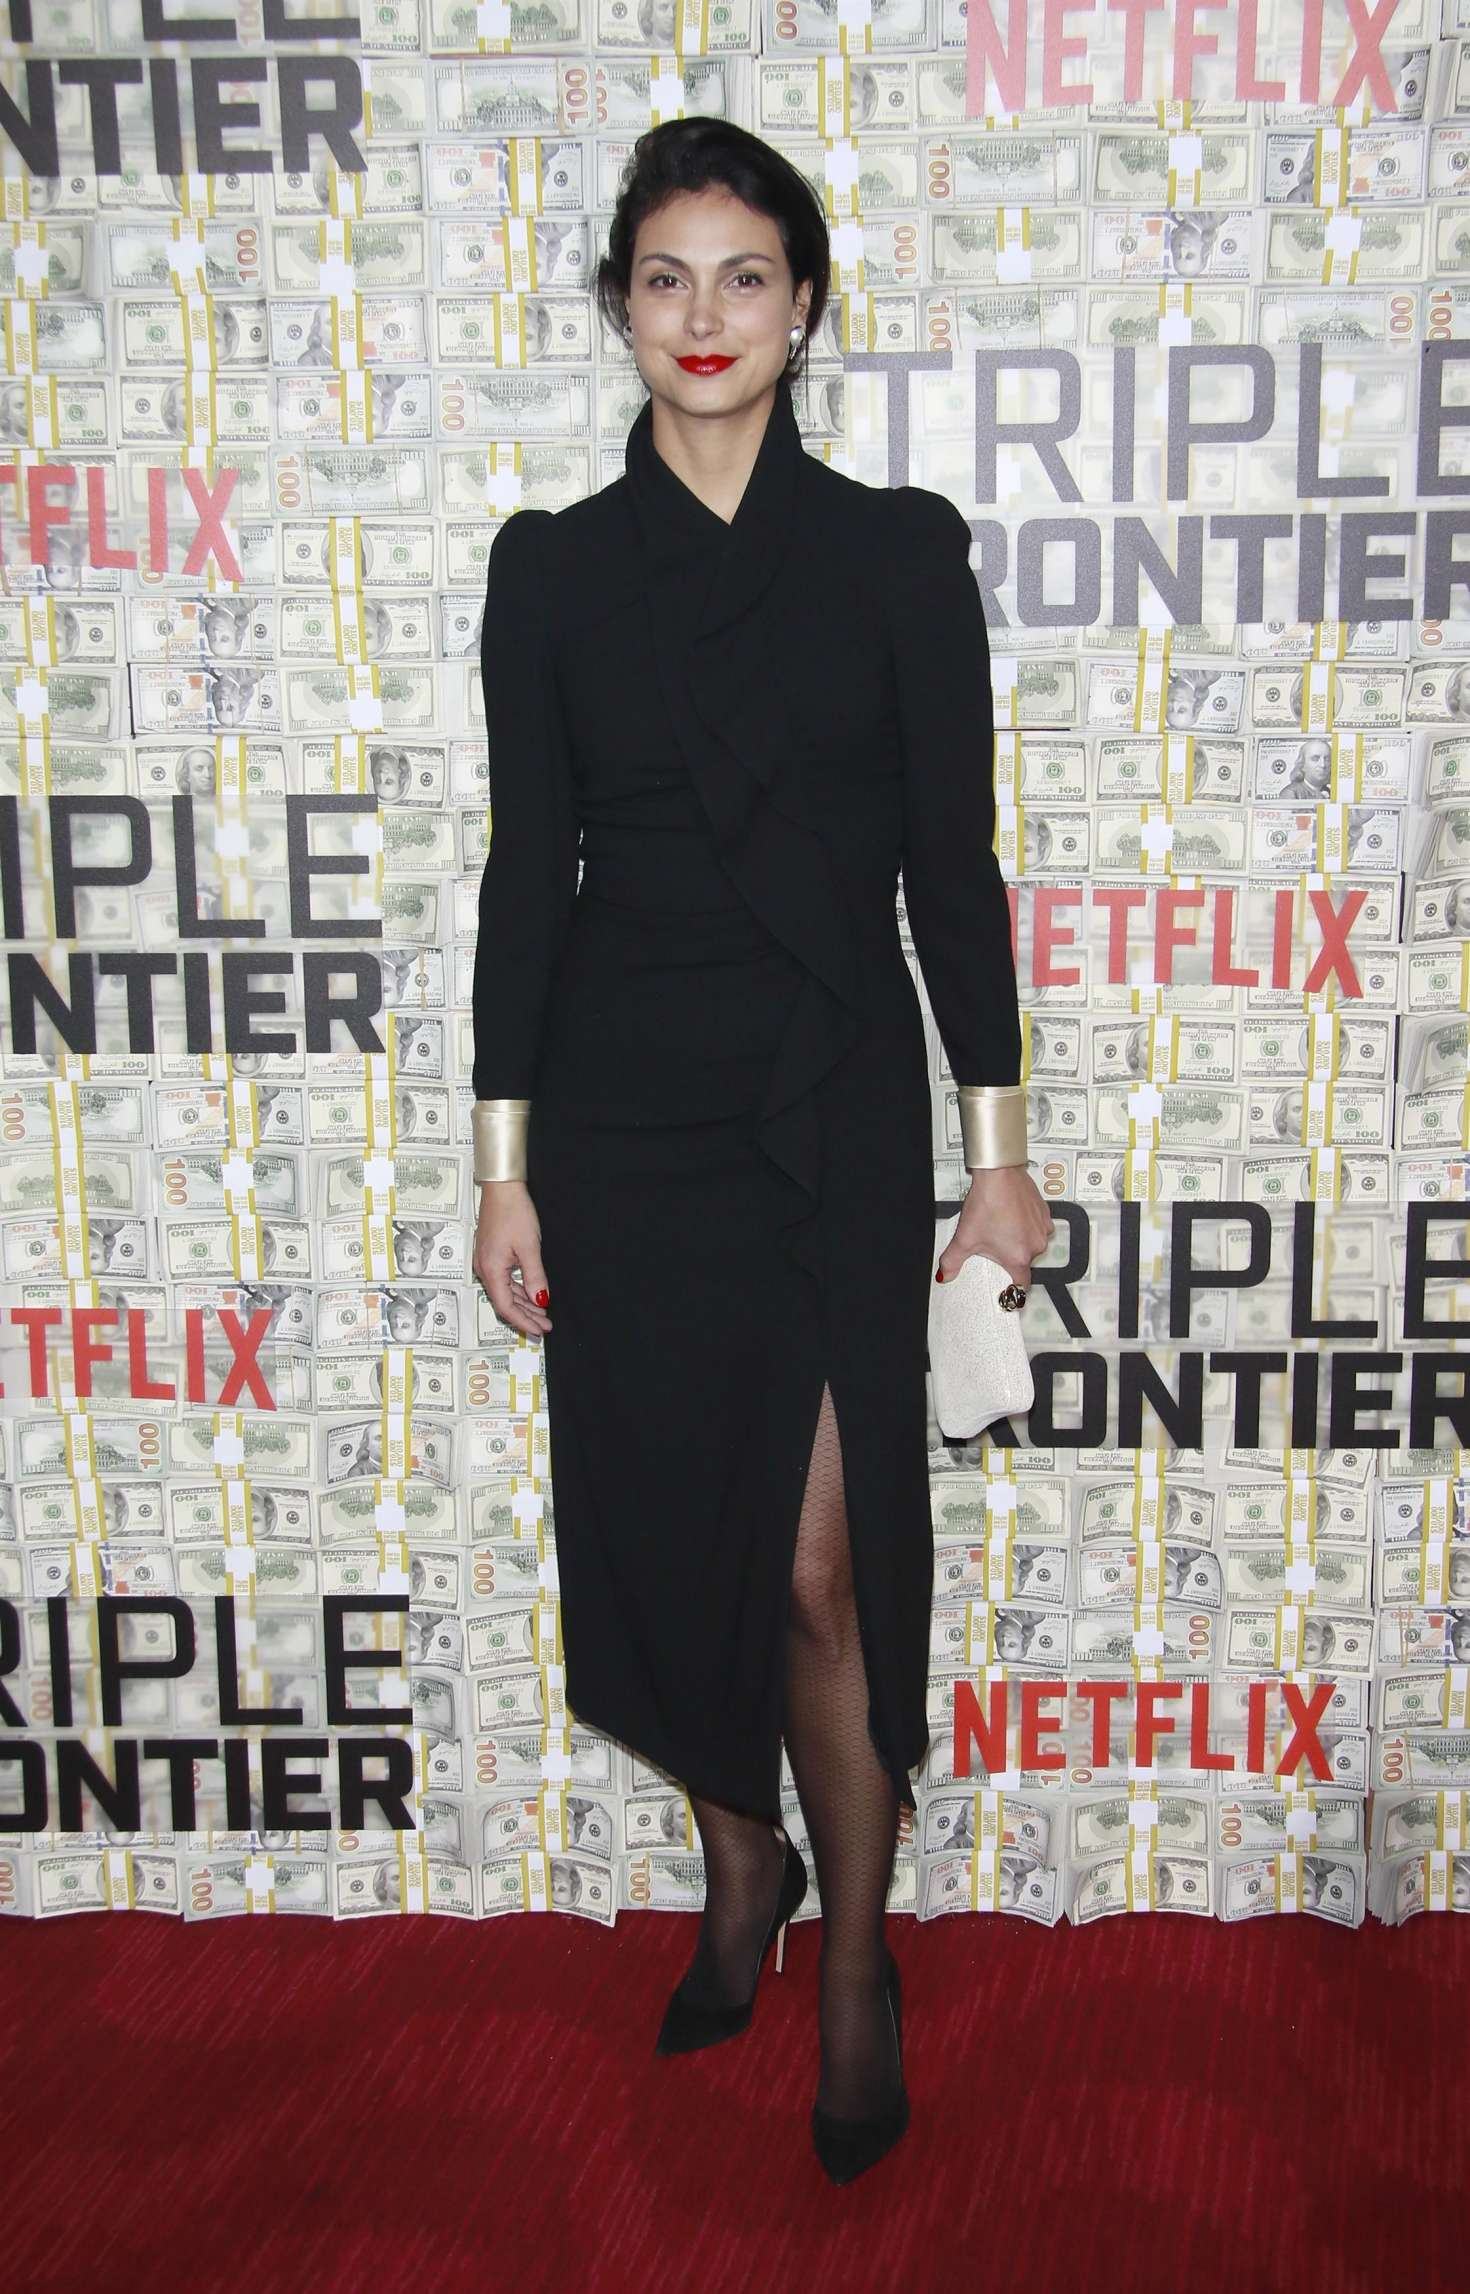 Morena Baccarin - 'Triple Frontier' Premiere in New York